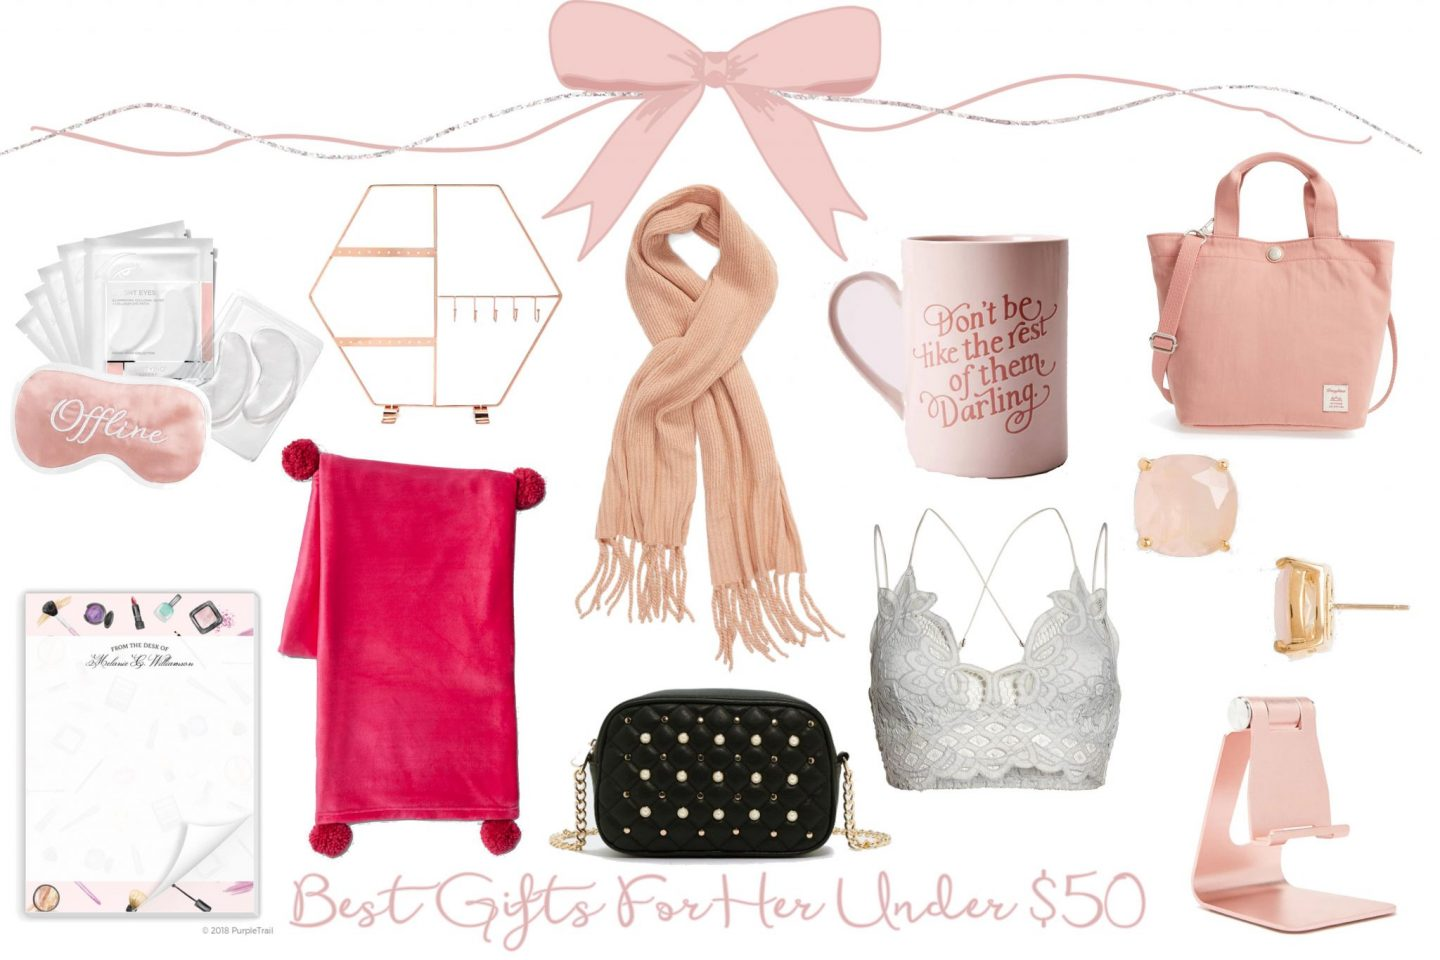 The Best Gifts For Her Under $50